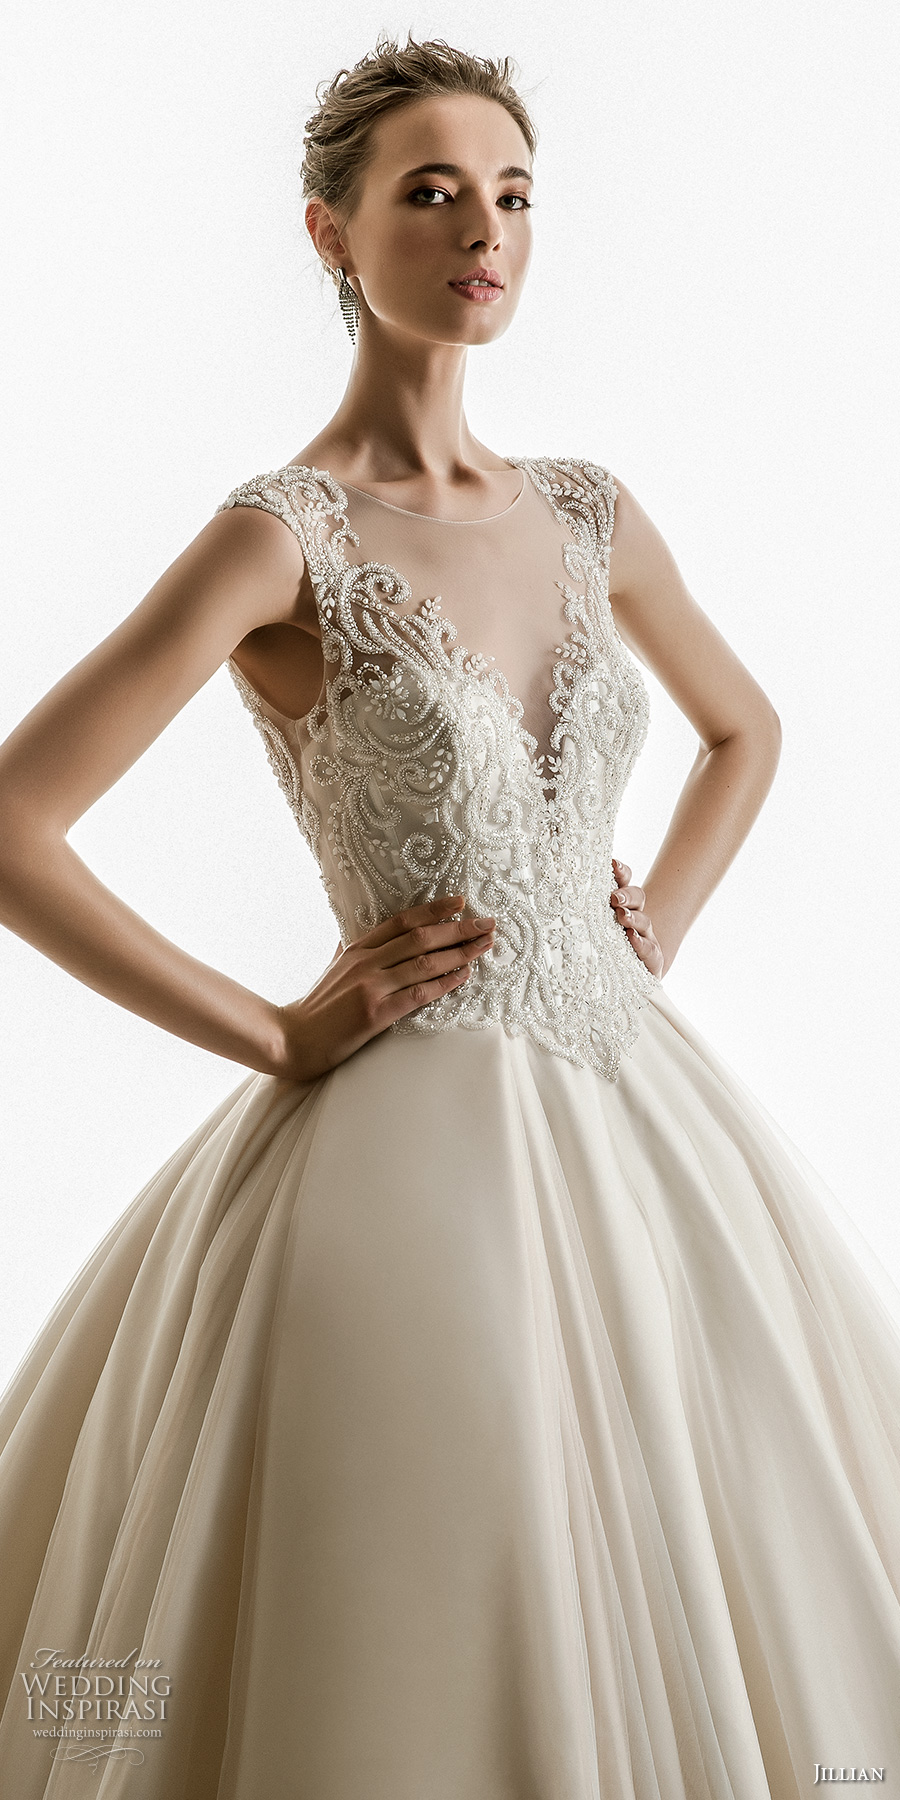 Jillian 2018 Wedding Dresses Wedding Inspirasi